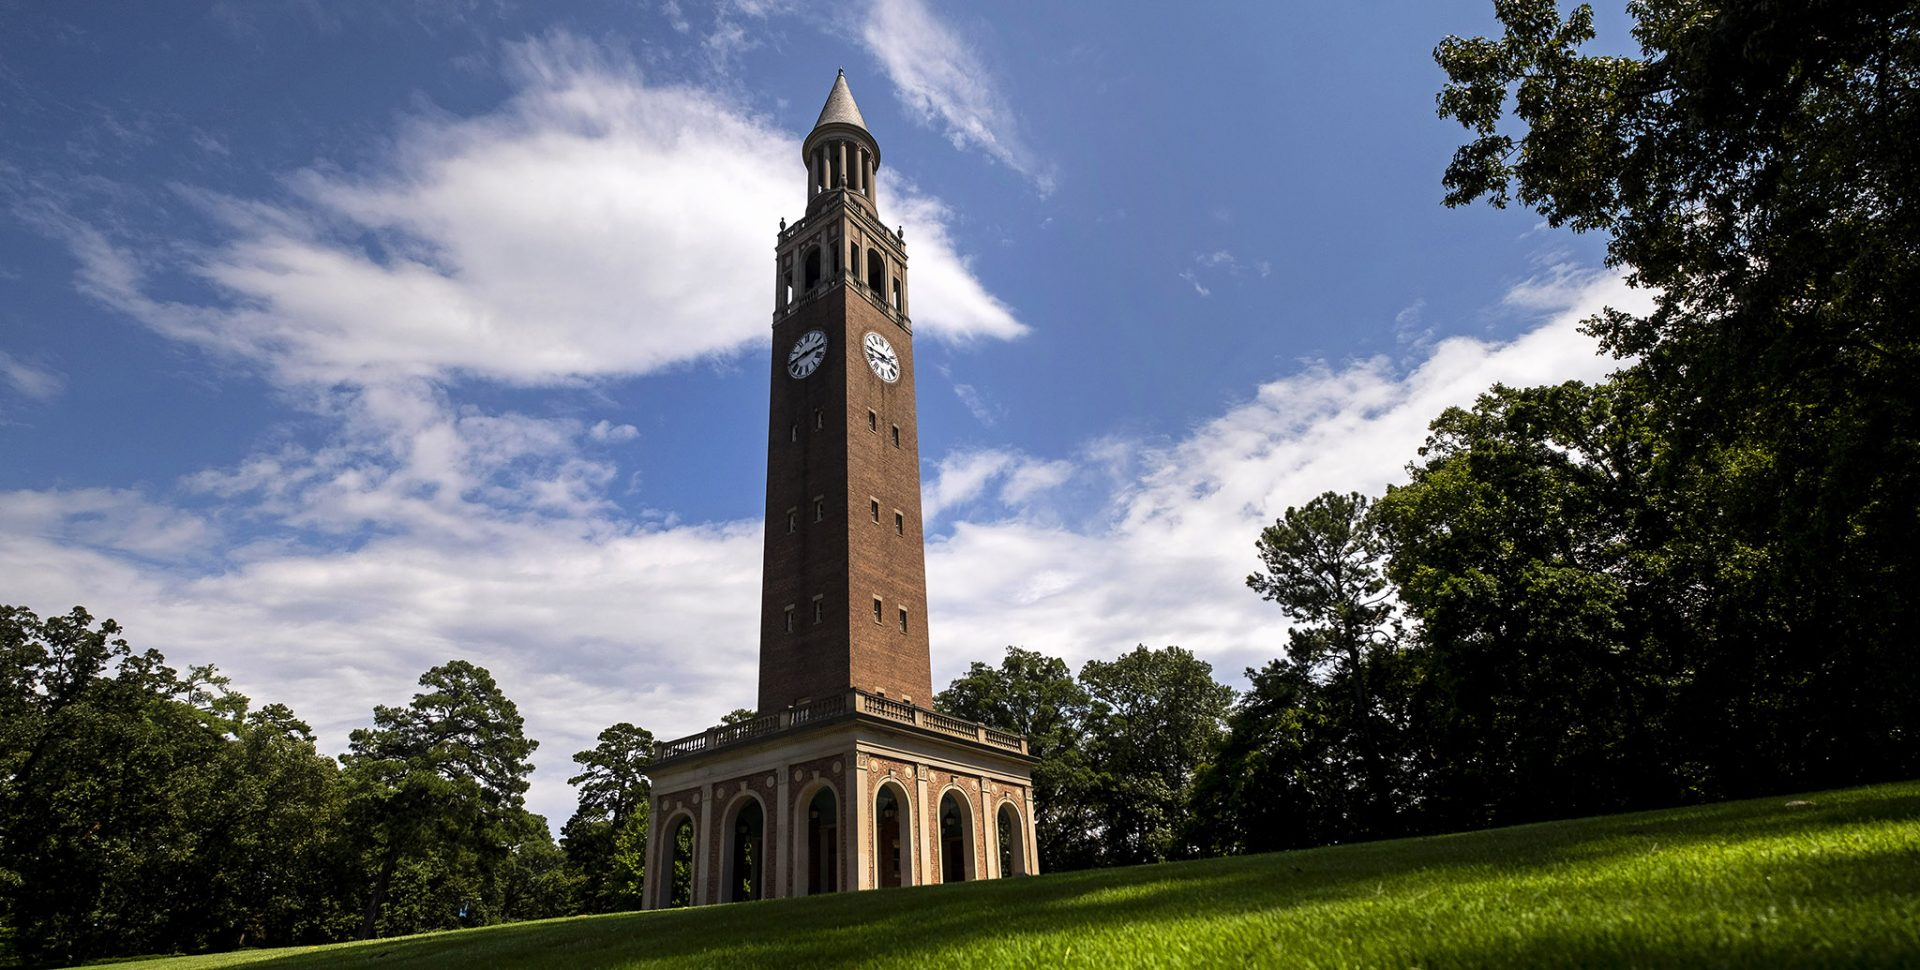 Morehead-Patterson Bell Tower on the campus of the University of North Carolina at Chapel Hill.